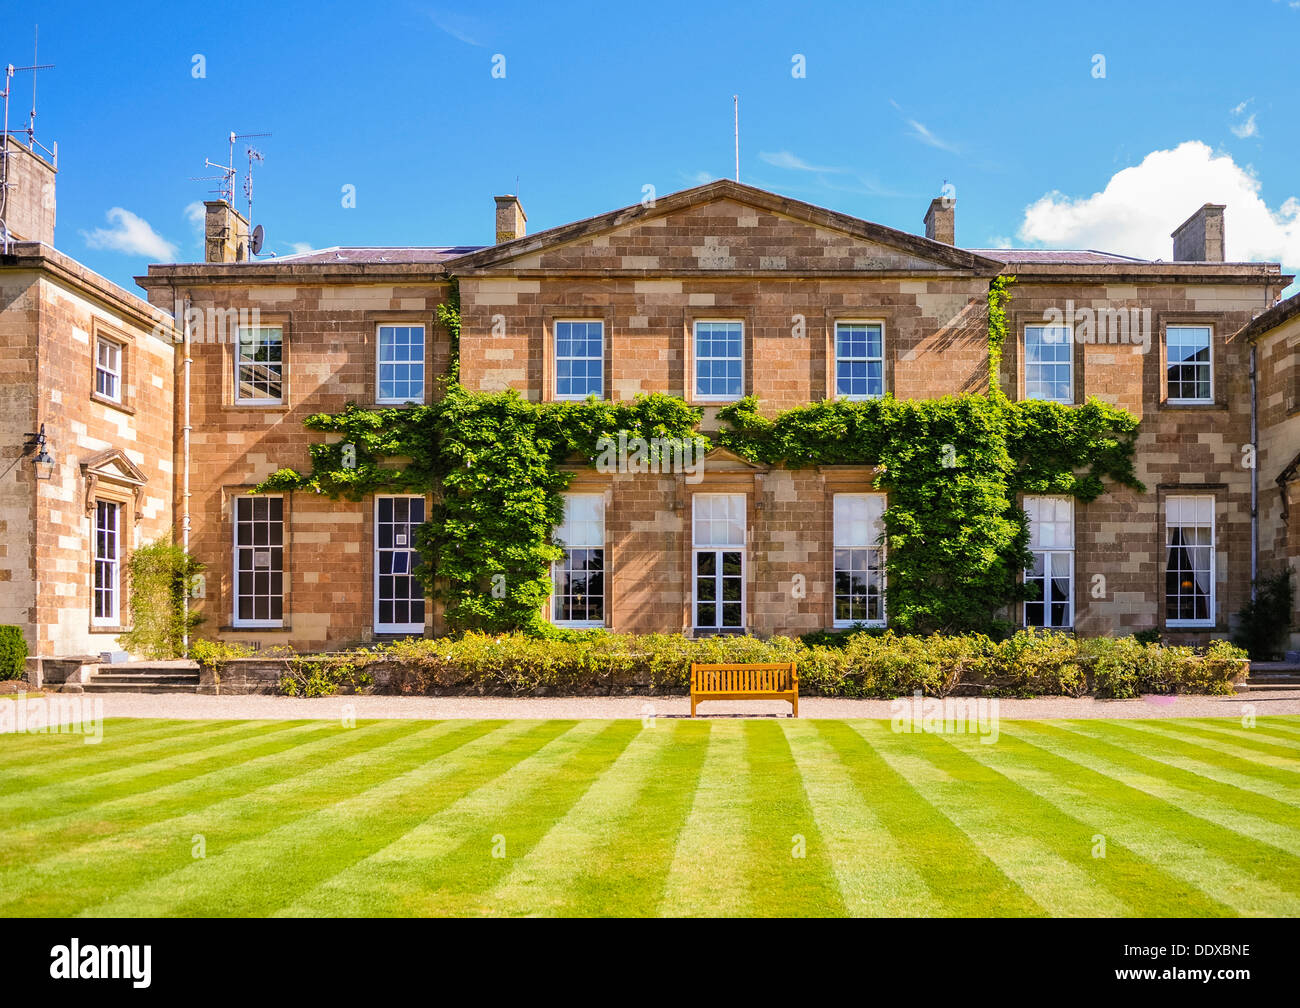 Hillsborough Palace, formerly known as Hillsborough Castle, the official Royal residence in Northern Ireland. - Stock Image